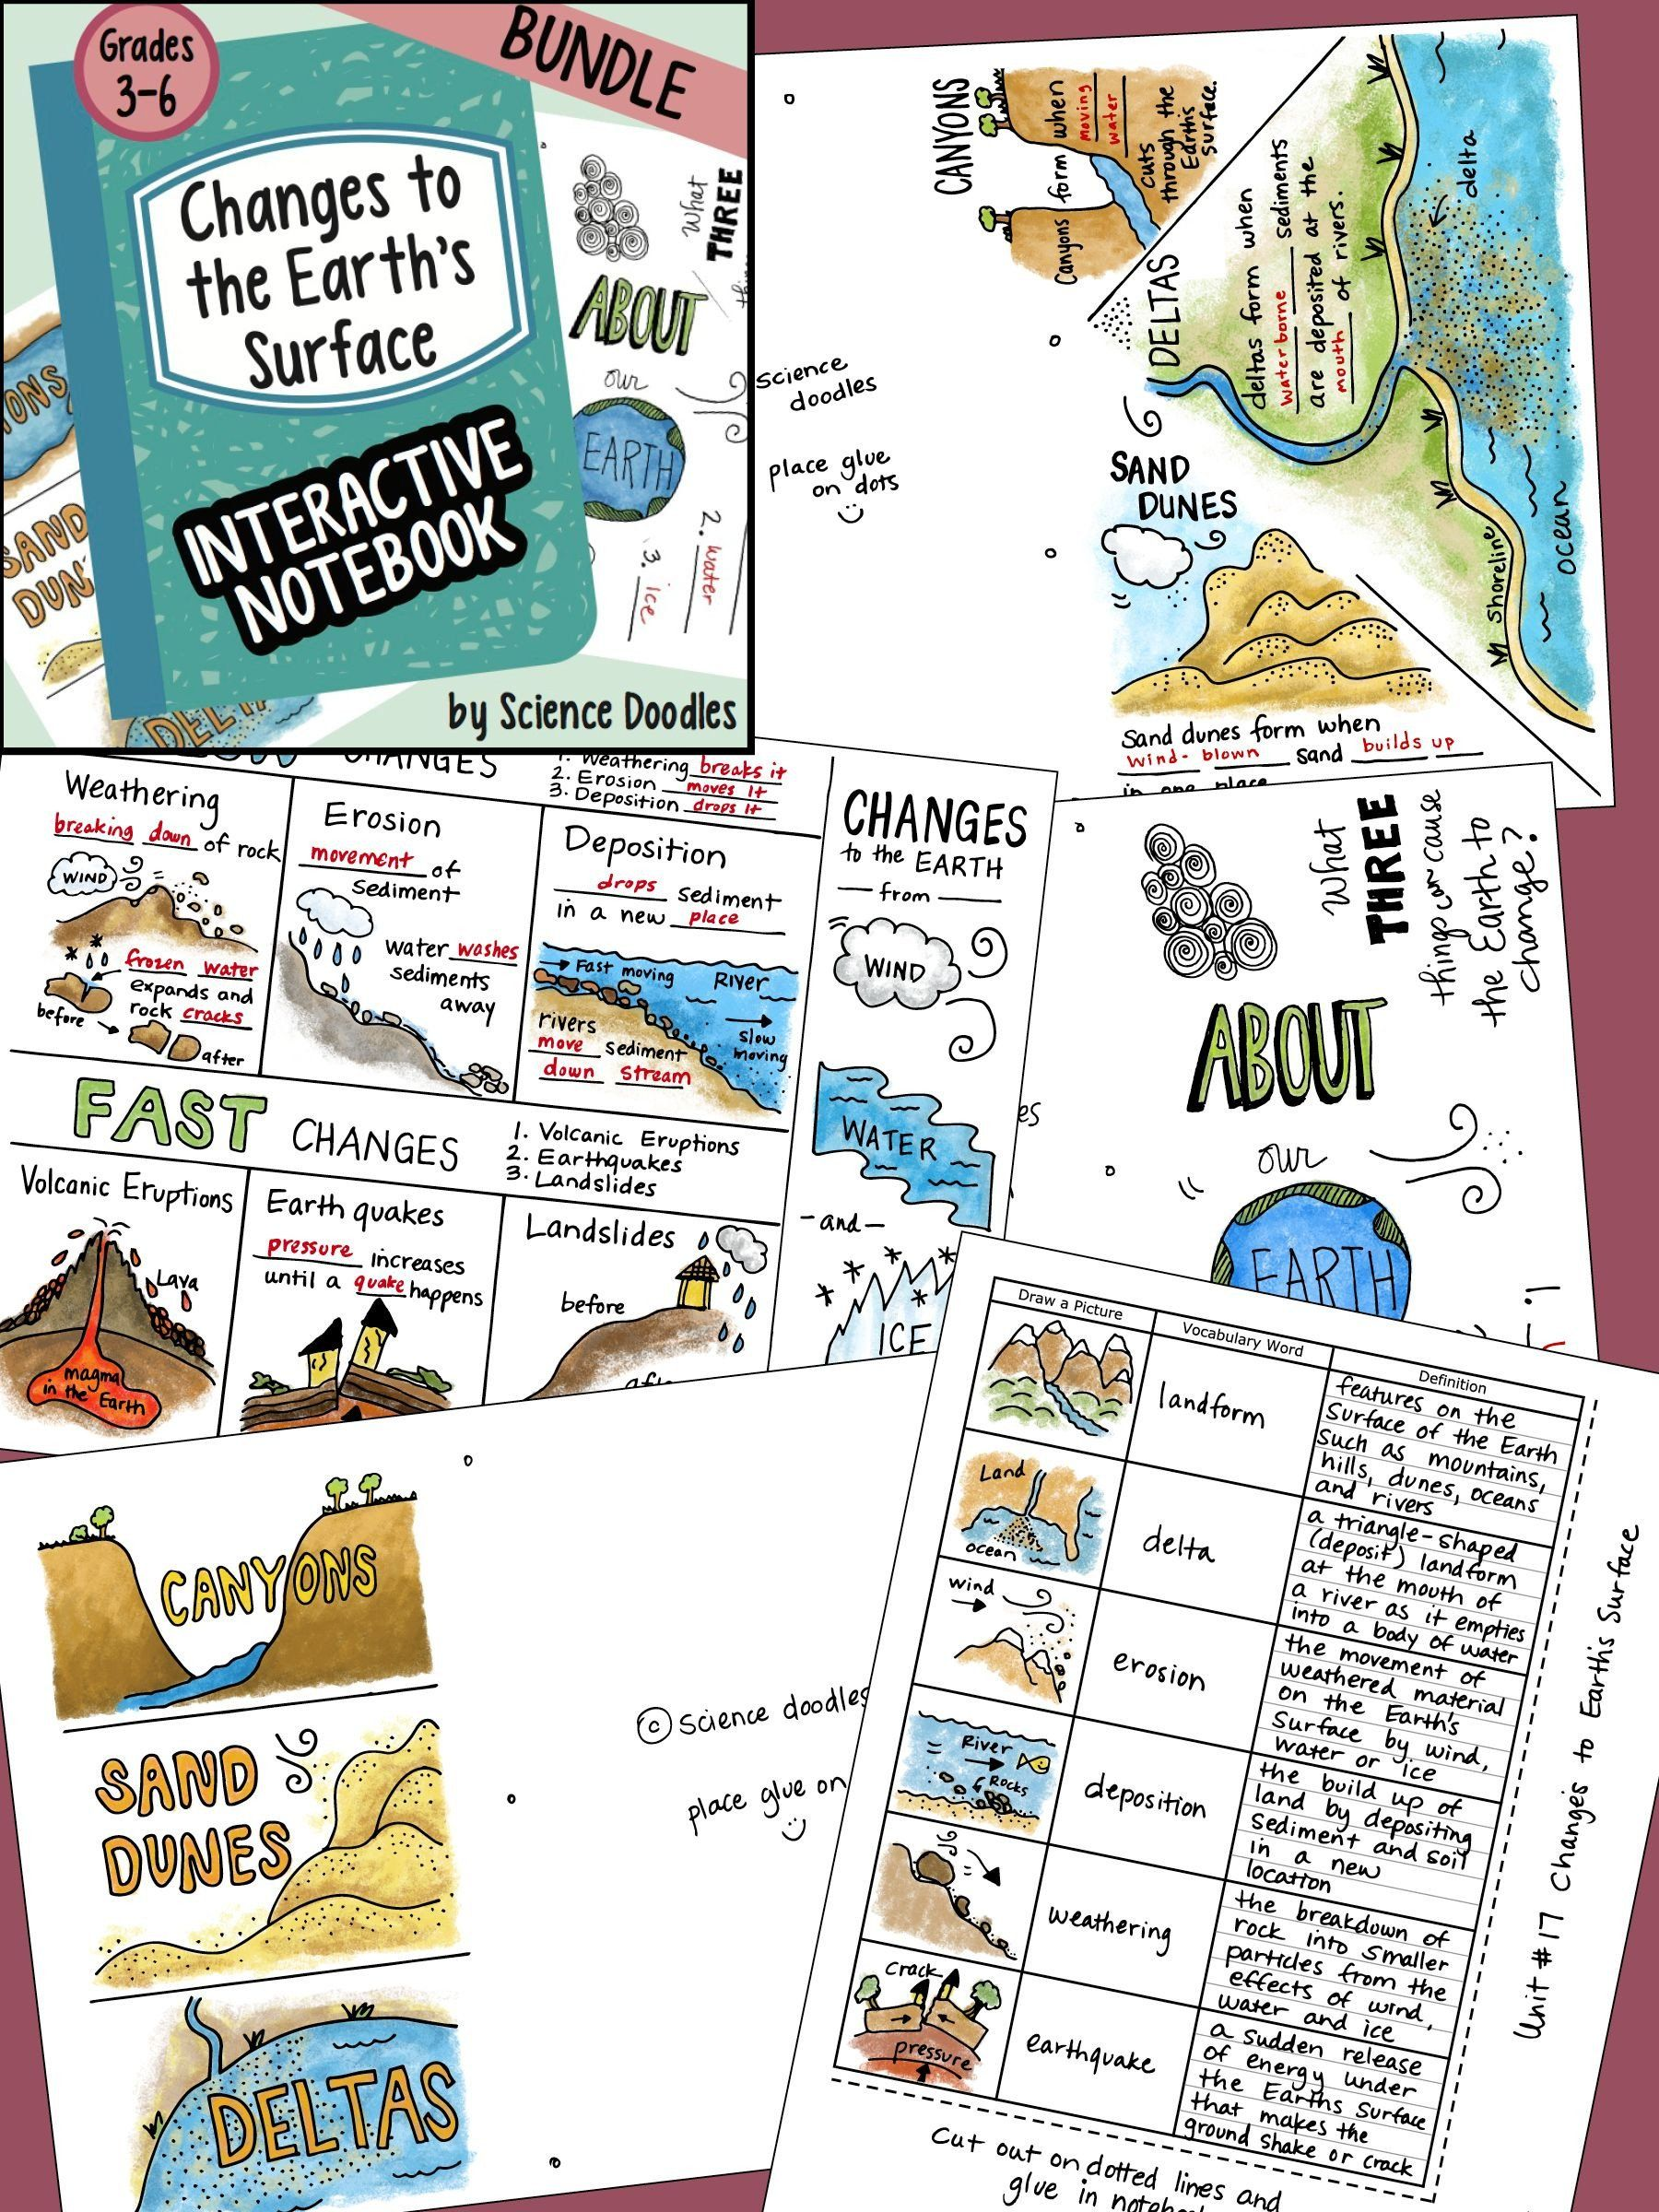 Weathering Erosion And Deposition Worksheet Weathering Erosion Deposition Changes To The Earth I Weathering And Erosion Science Doodles Interactive Notebooks